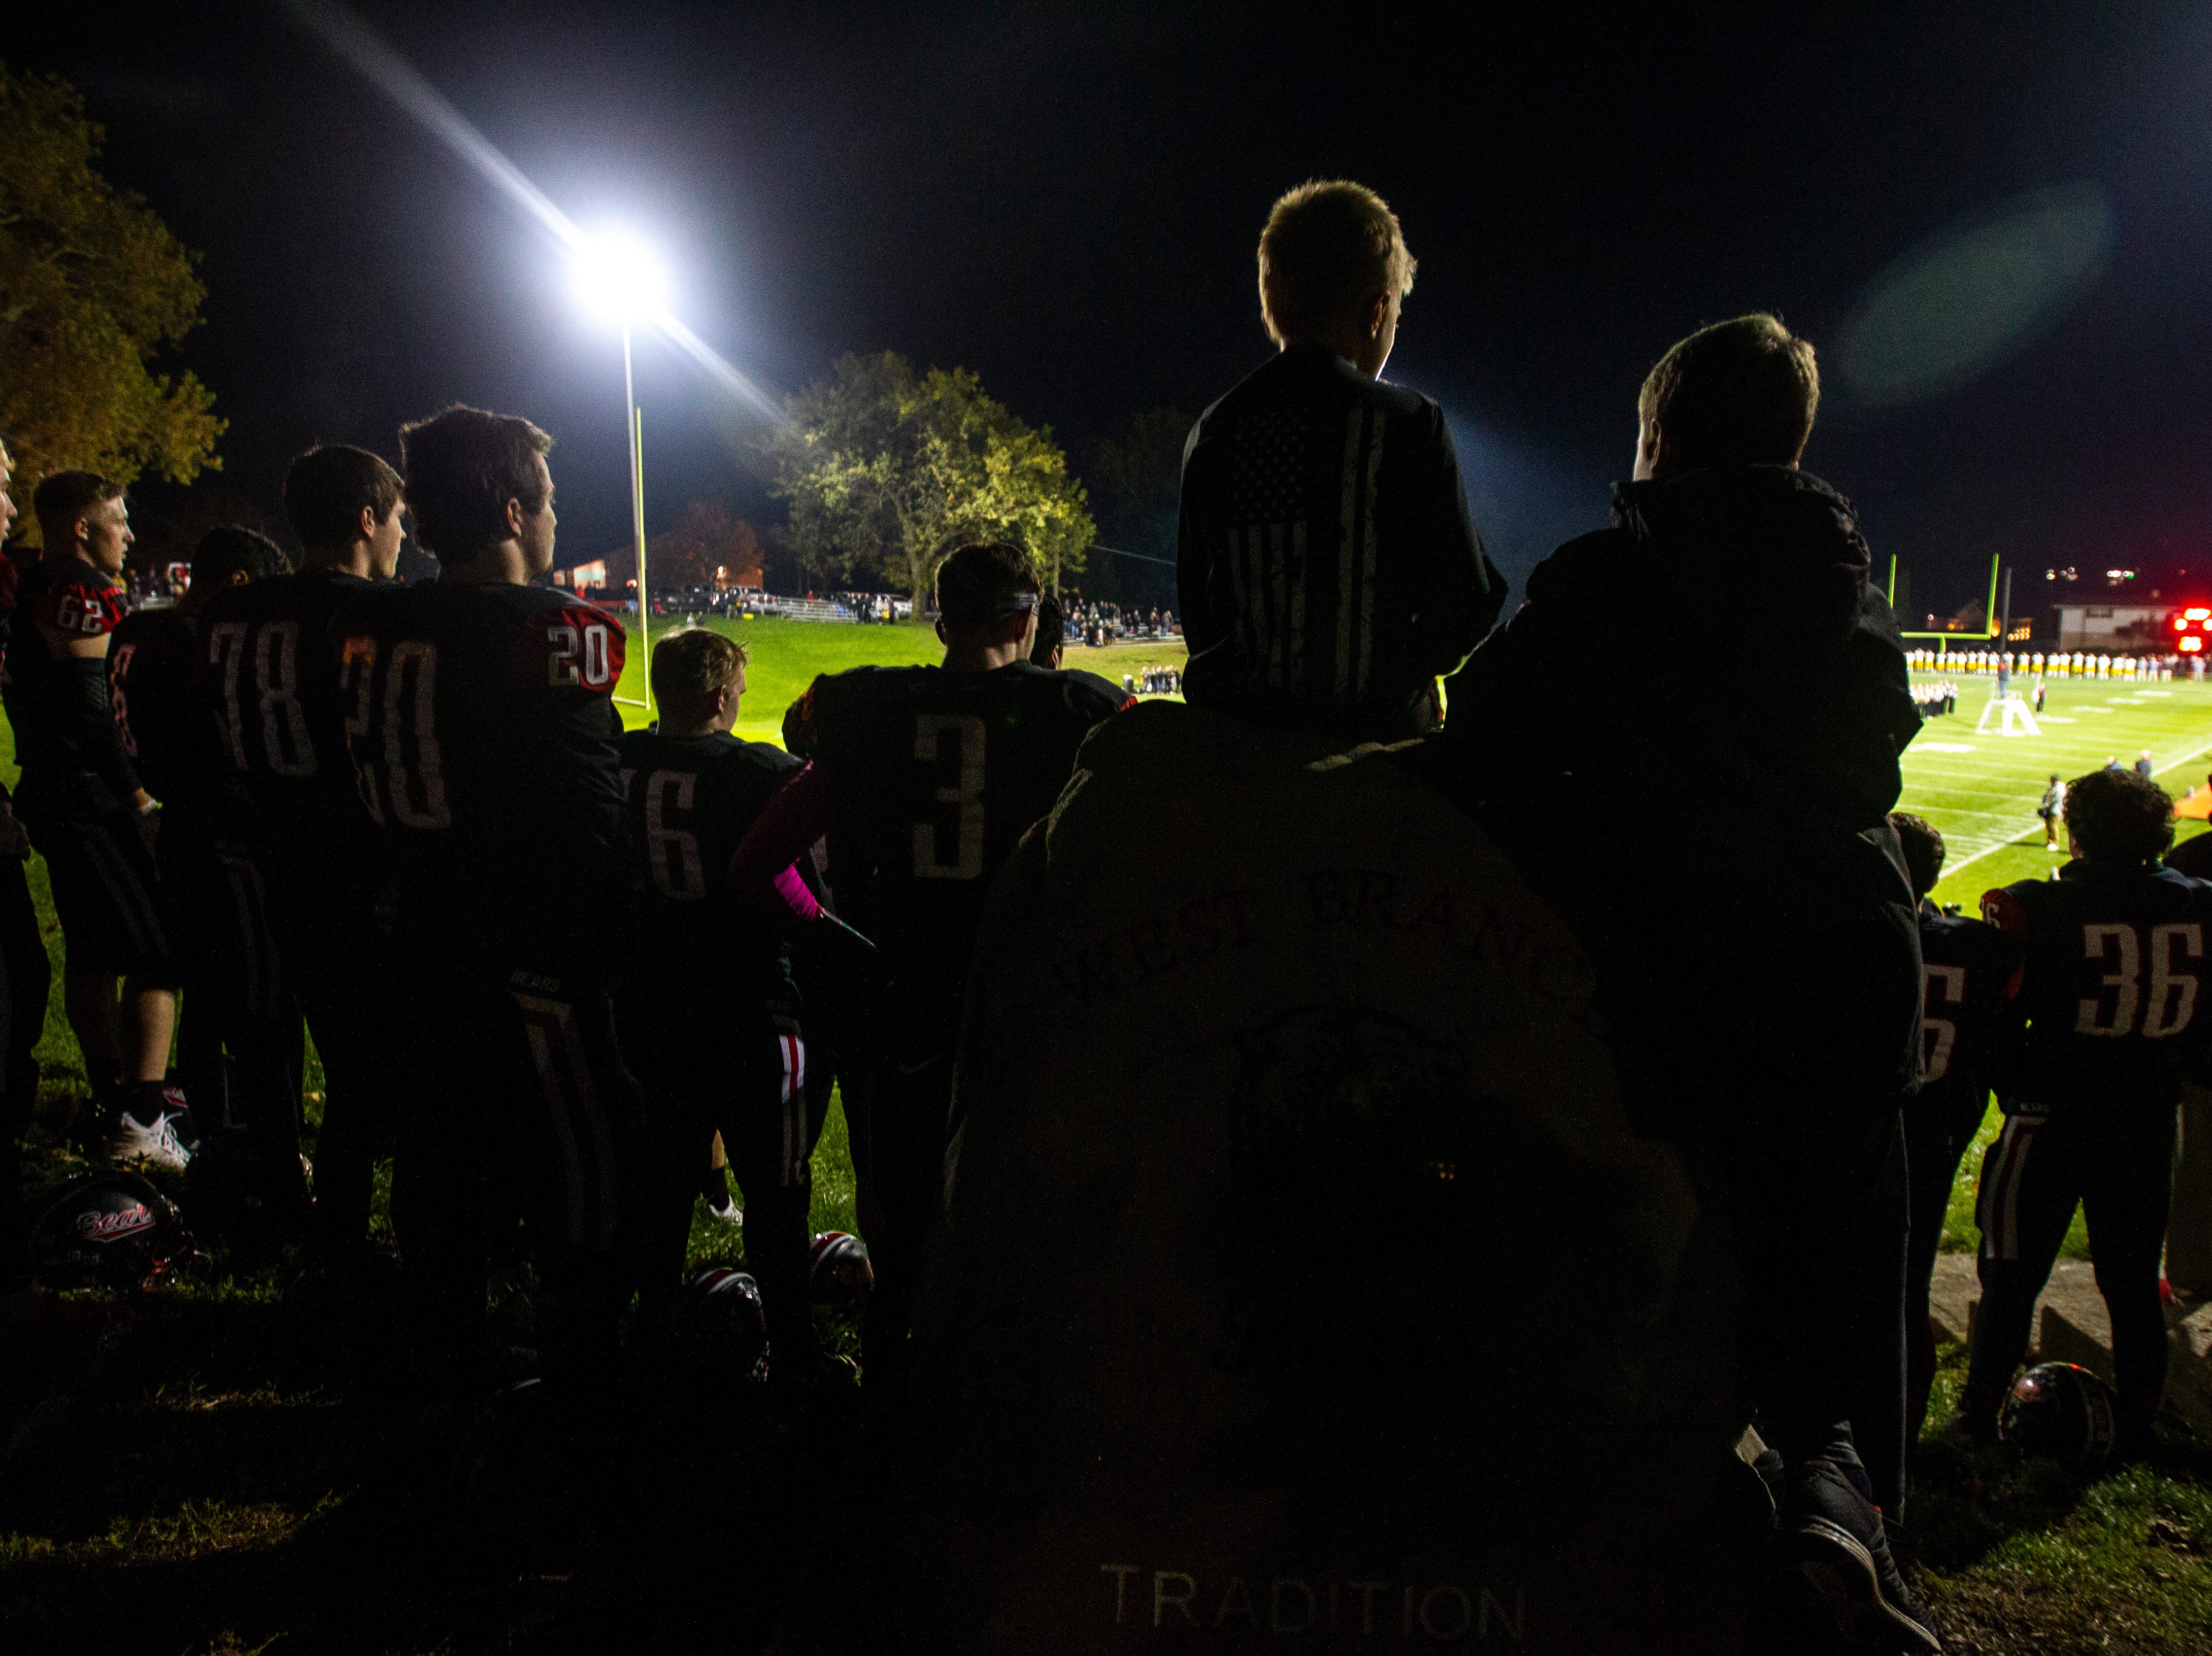 West Branch prepare to take the field before a Class A varsity football game on Friday, Oct. 12, 2018, at the Little Rose Bowl in West Branch, Iowa.